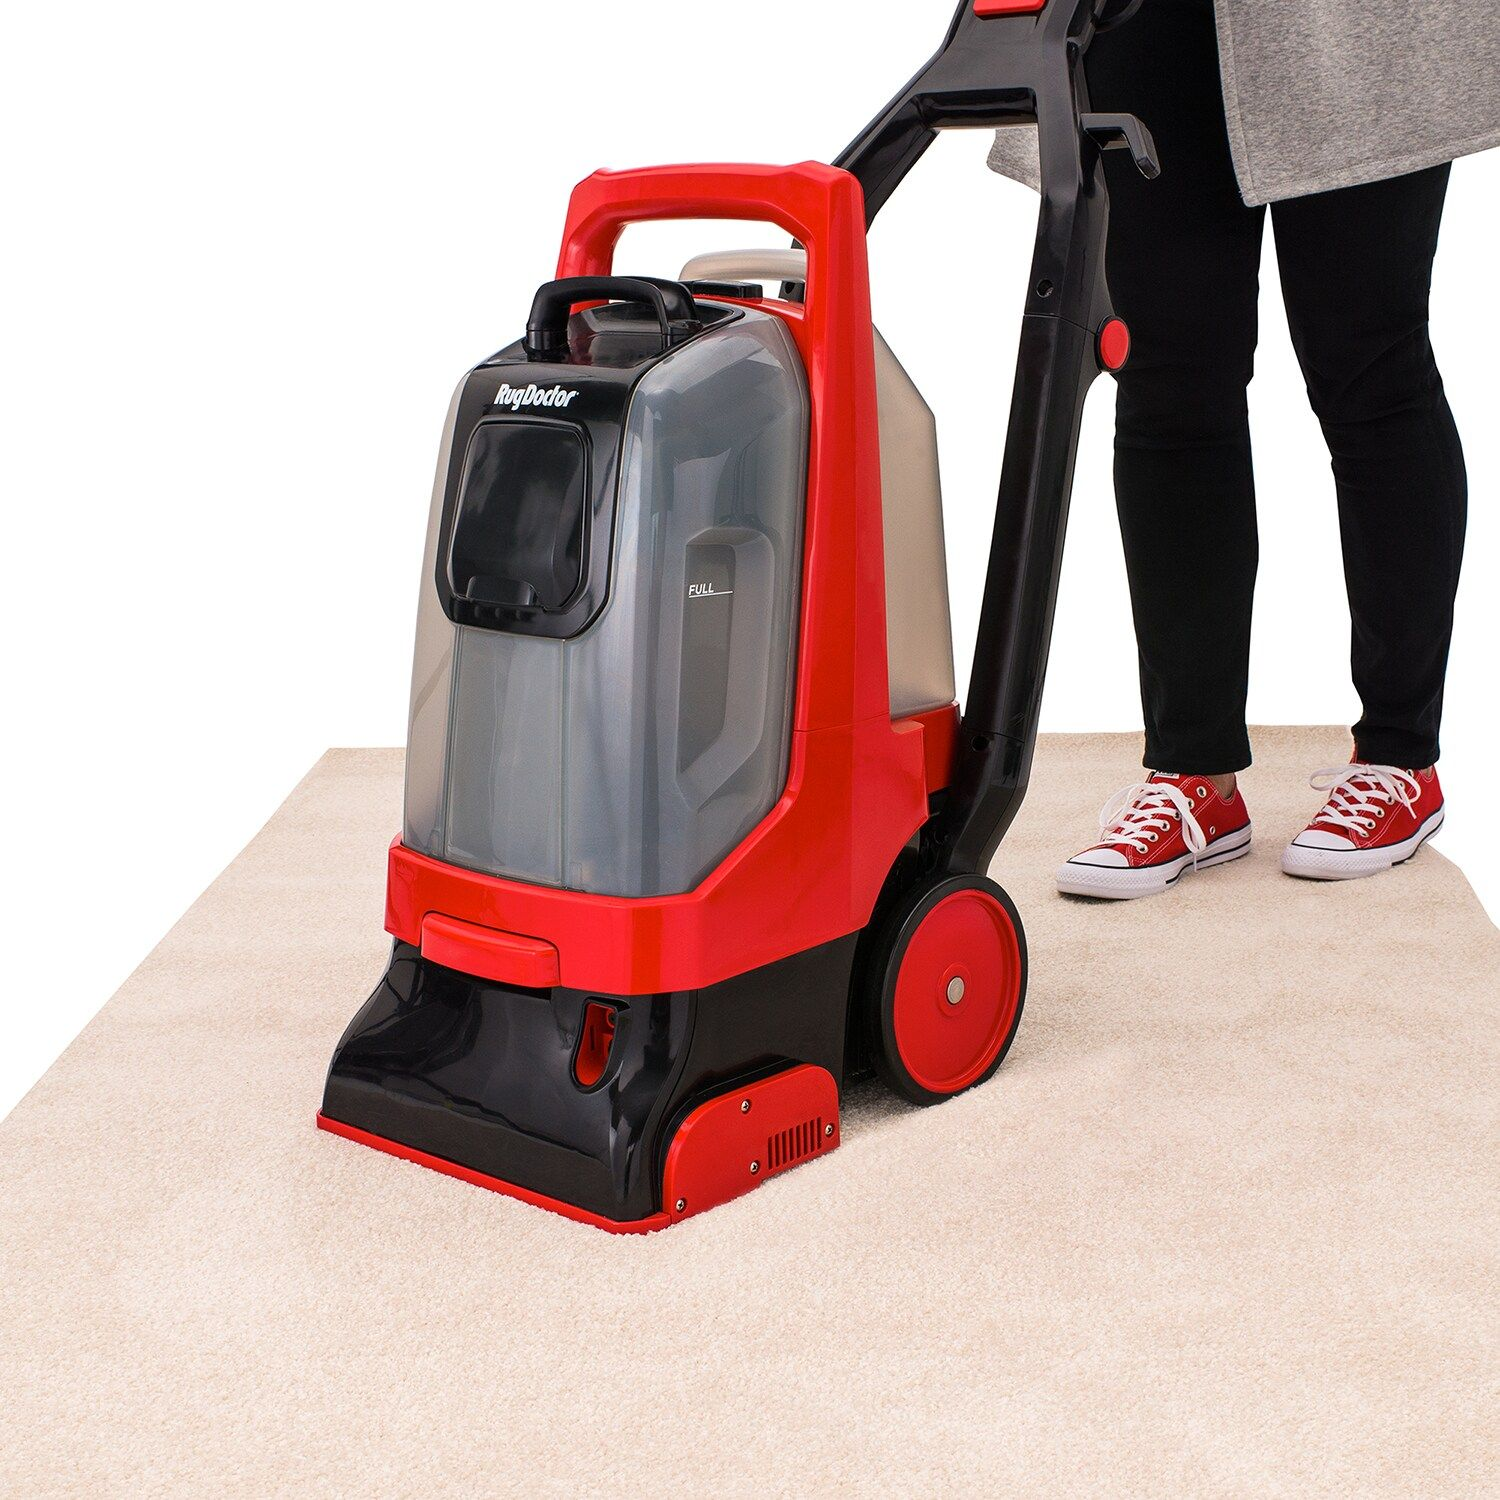 Rug Doctor Pro Deep Carpet Cleaner With Motorized Hard Floor Tool 93195 Deep Carpet Pro R Carpet Cleaners Deep Carpet Cleaning Carpet Cleaning Recipes